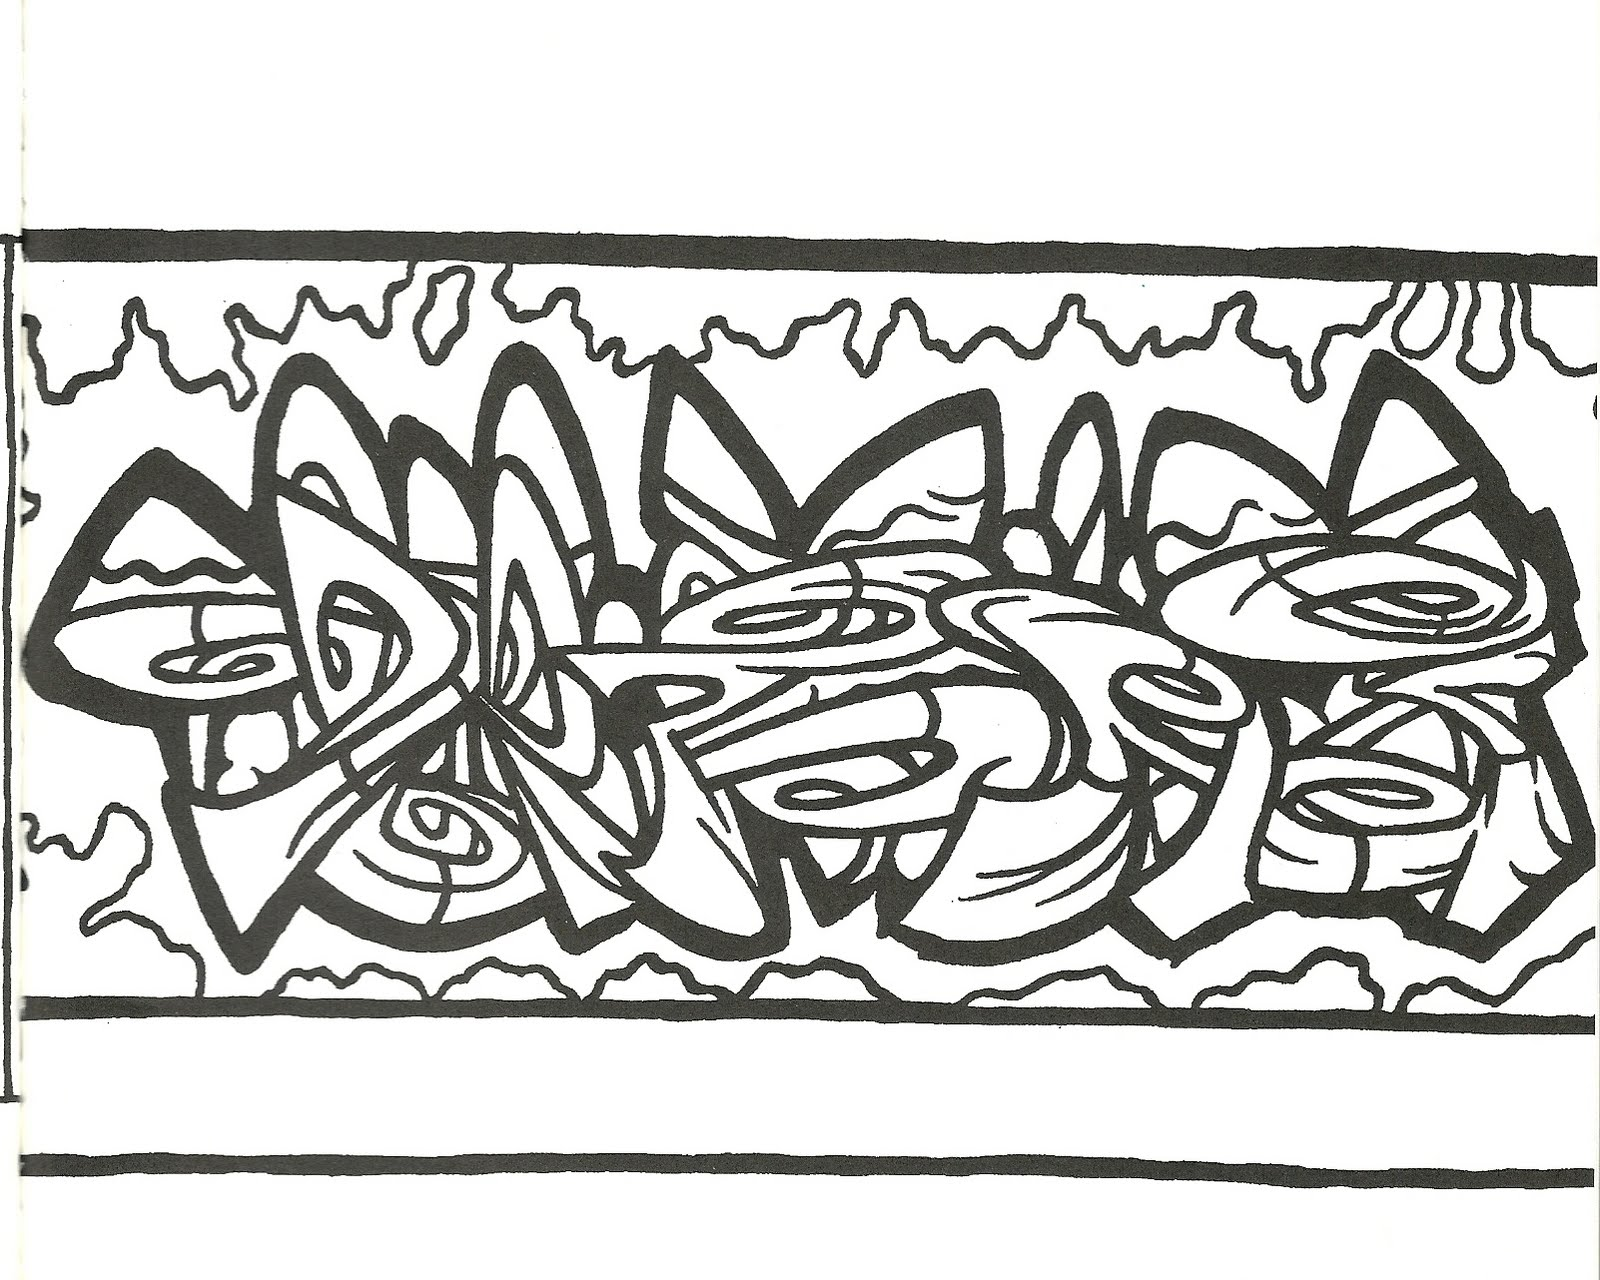 coloring pages urban art - photo#2